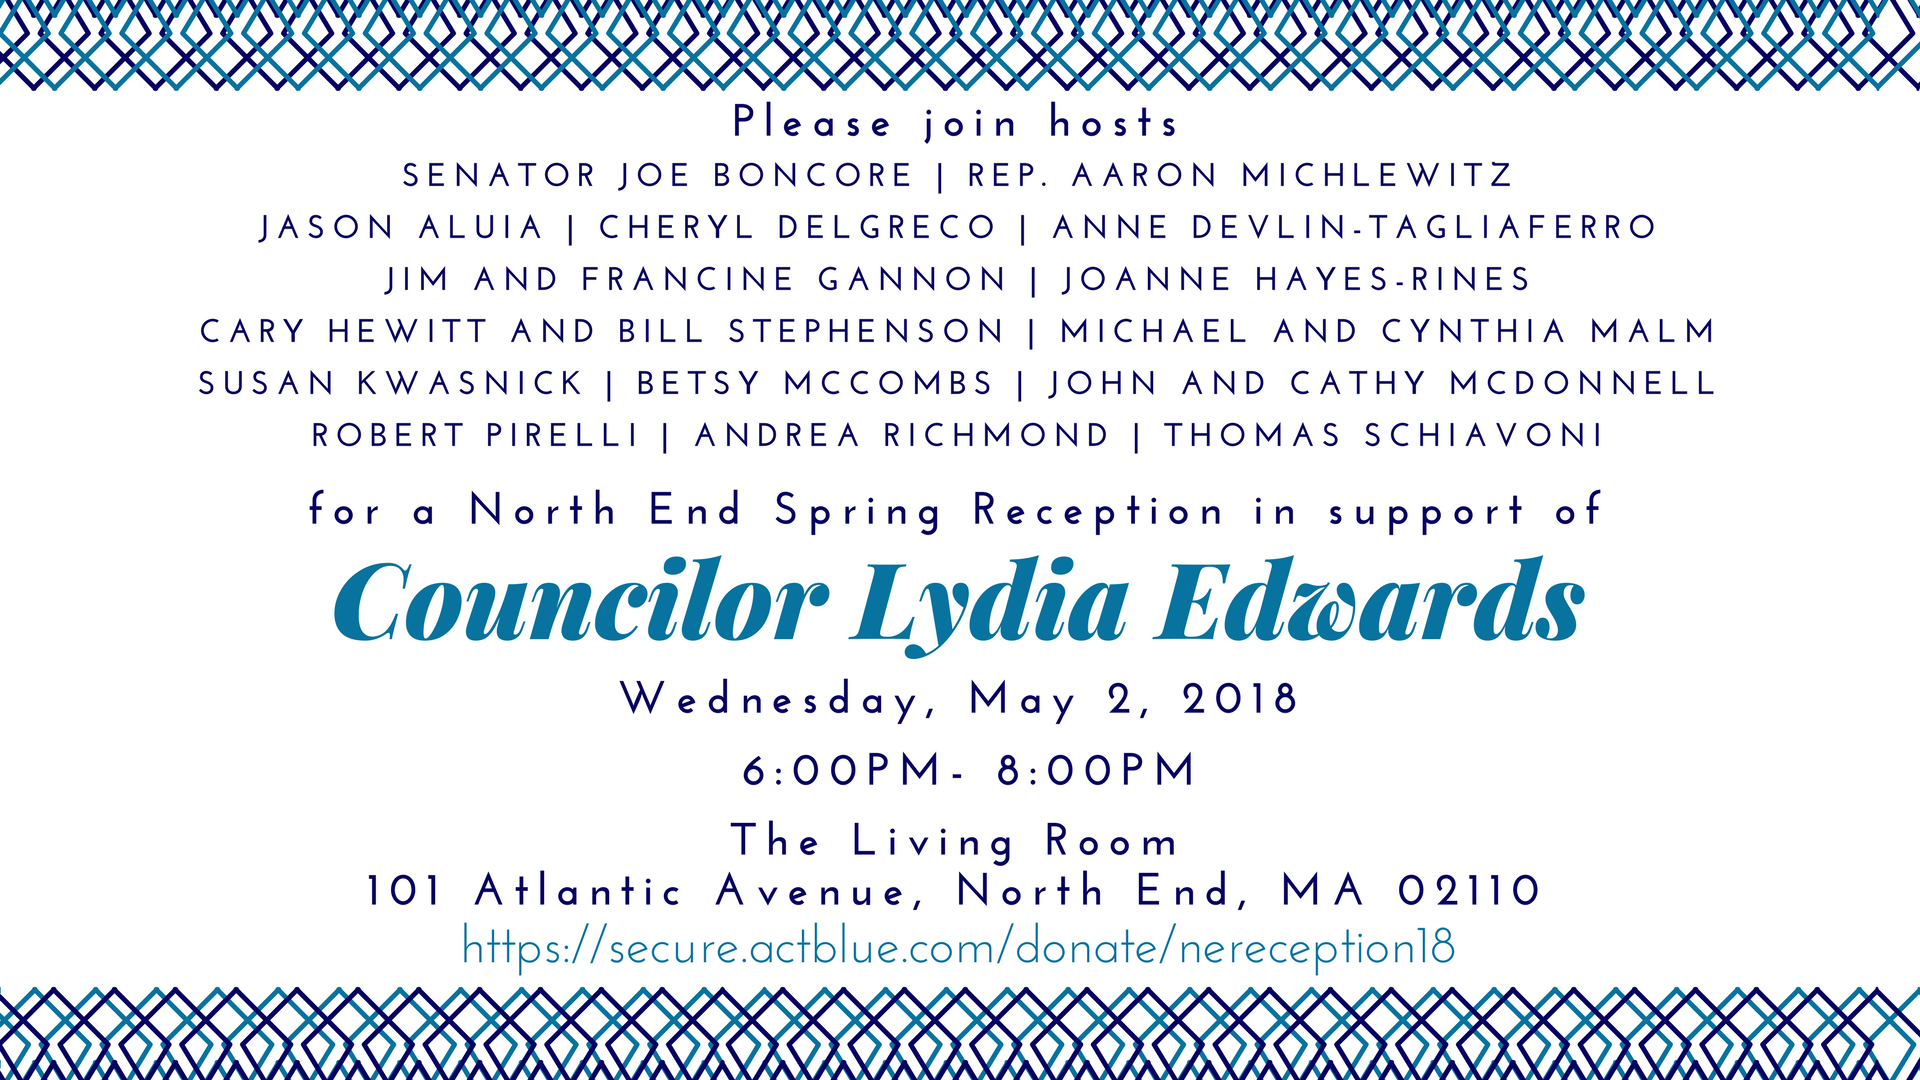 North End Spring Reception in Support of Councilor Lydia Edwards on ...